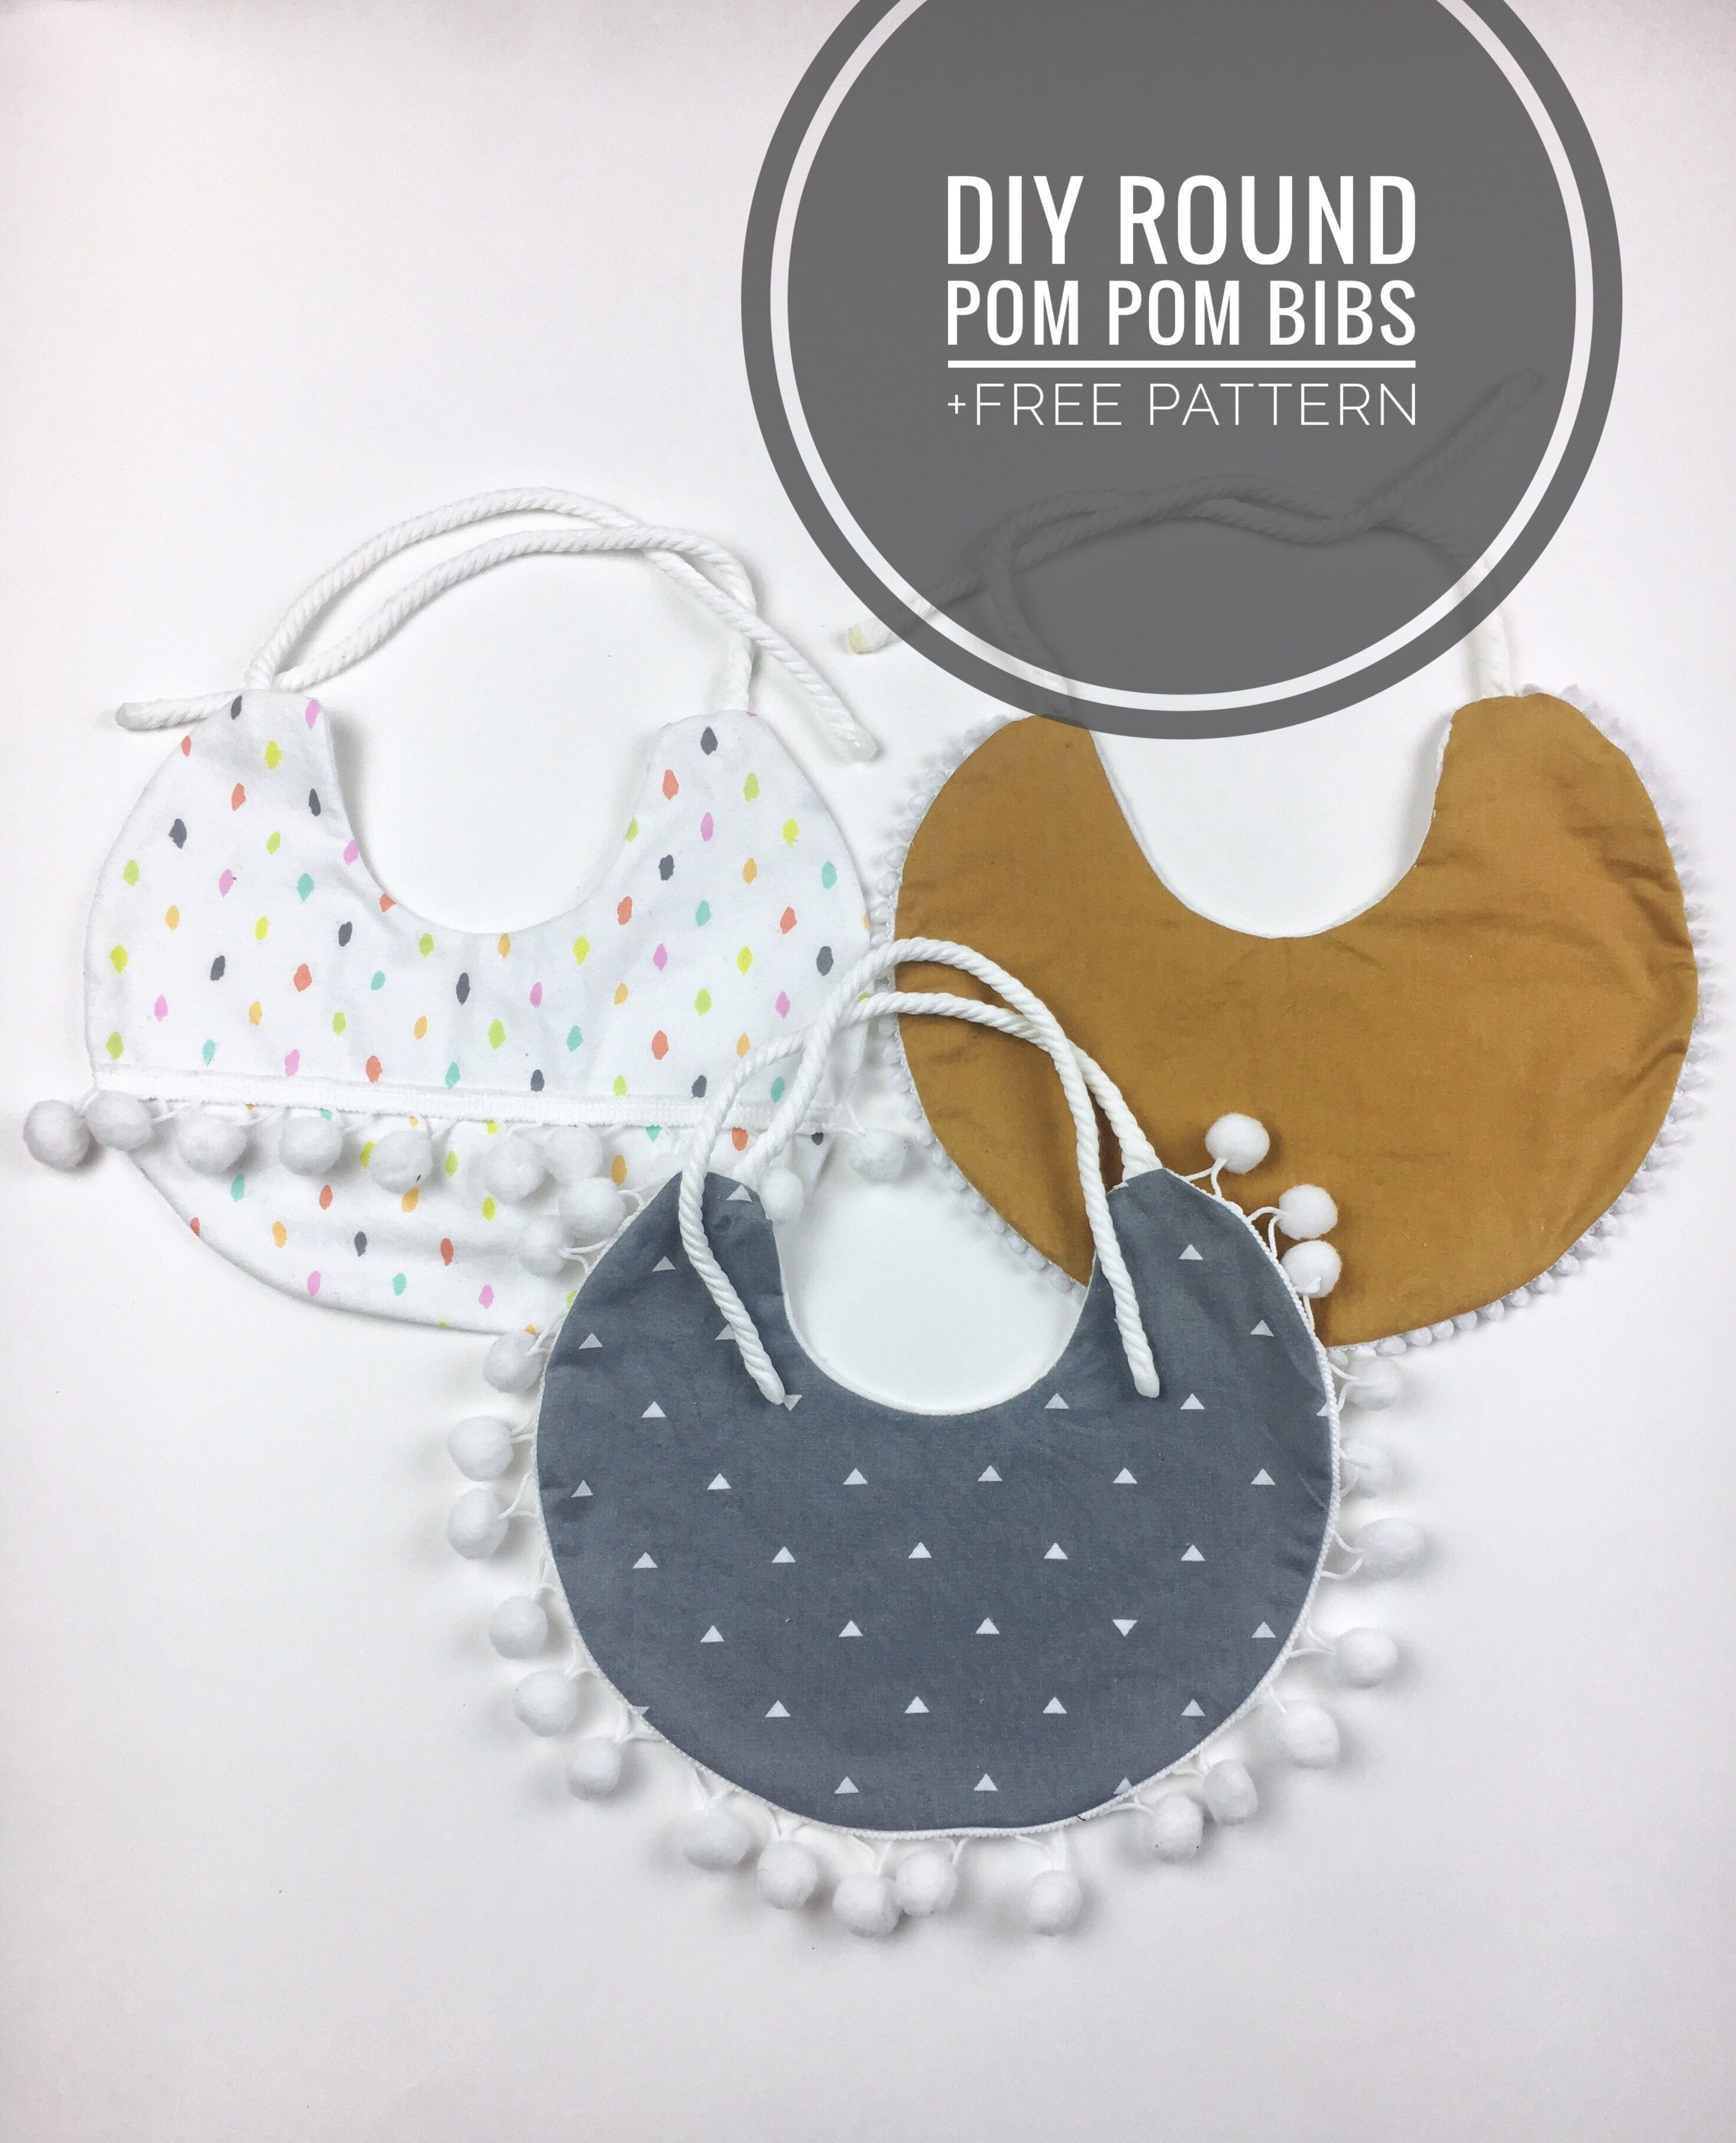 Make your own pom pom bib under $5!!! Etsy sales for $20, save money and diy! Perfect for your baby!